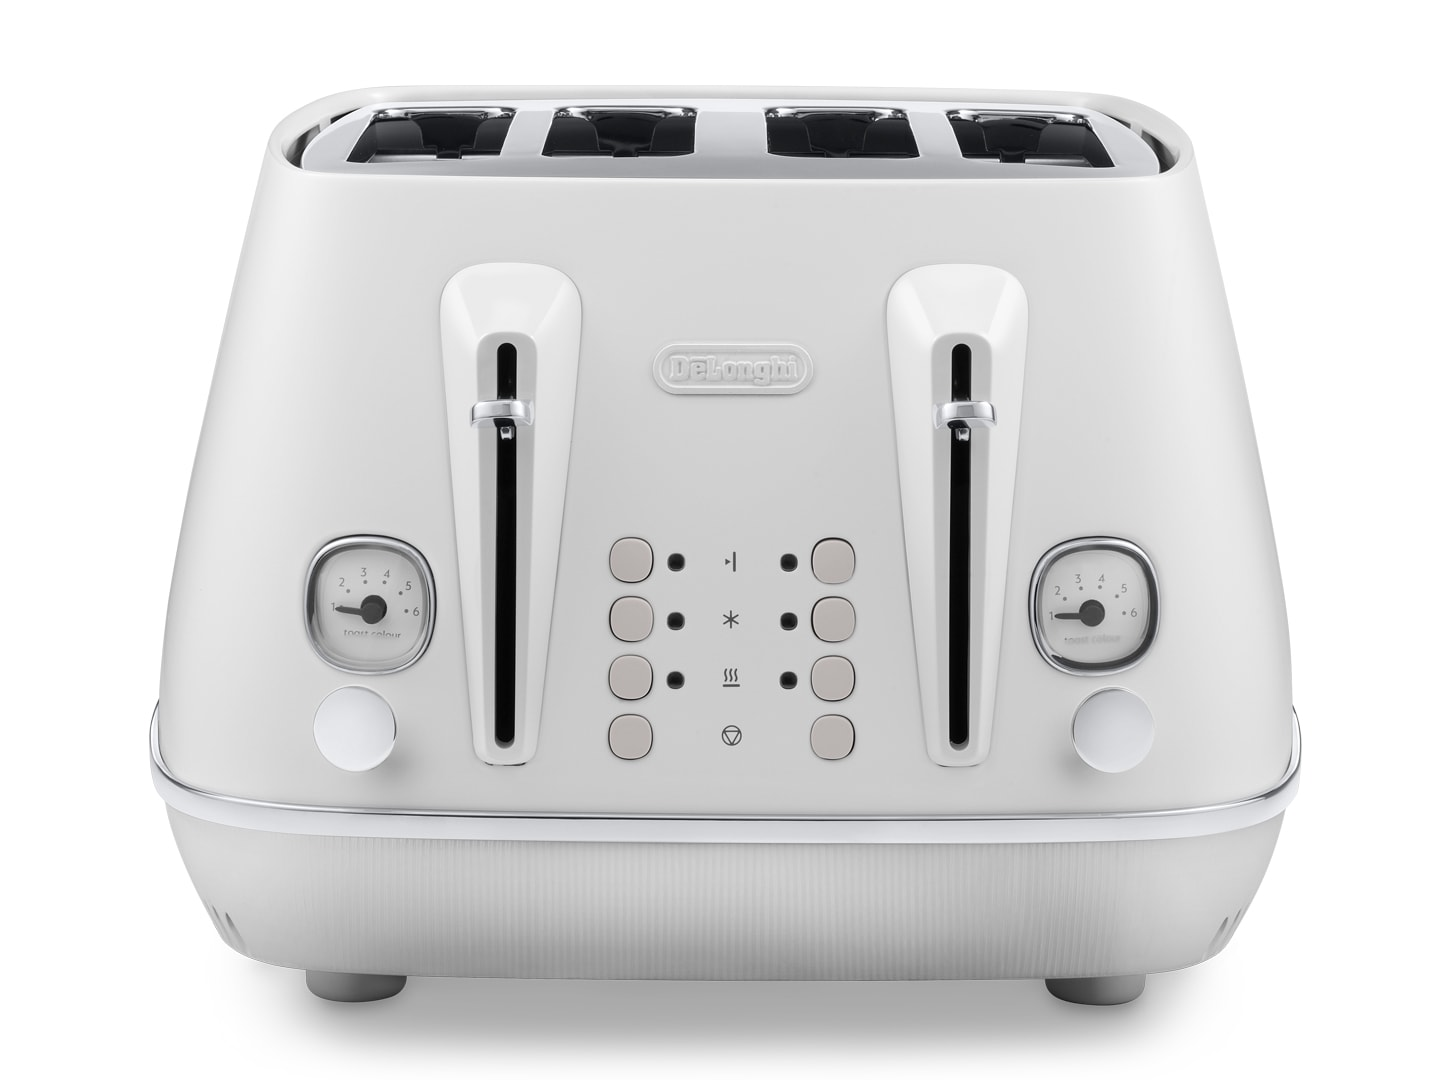 DeLonghi Distinta Moments 4 Slice Toaster White CTIN4003.W